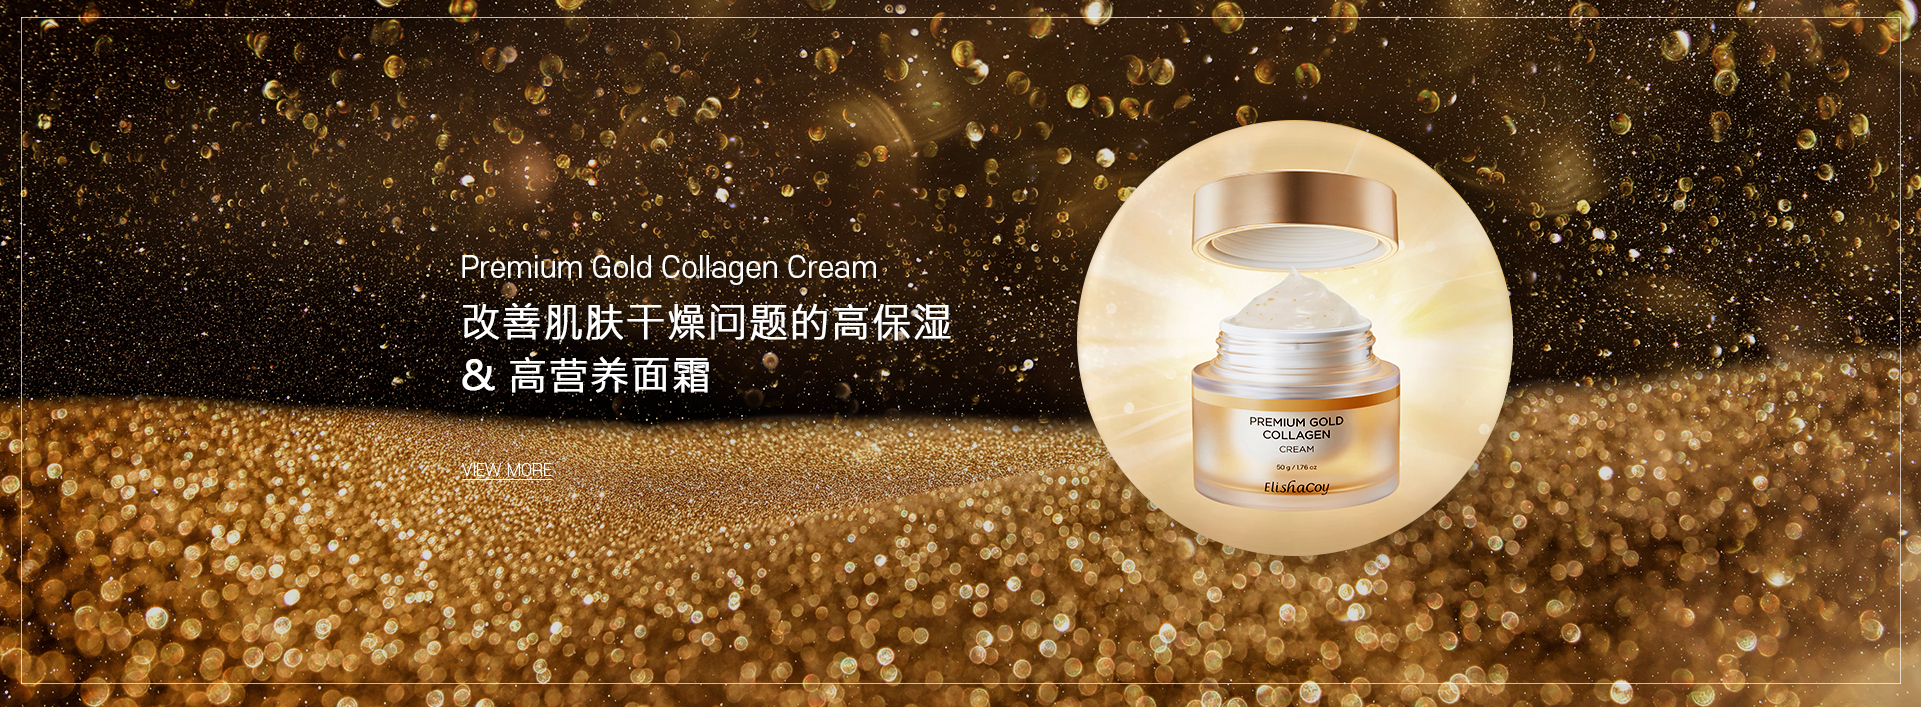 GOLD COLLAGEN CREAM